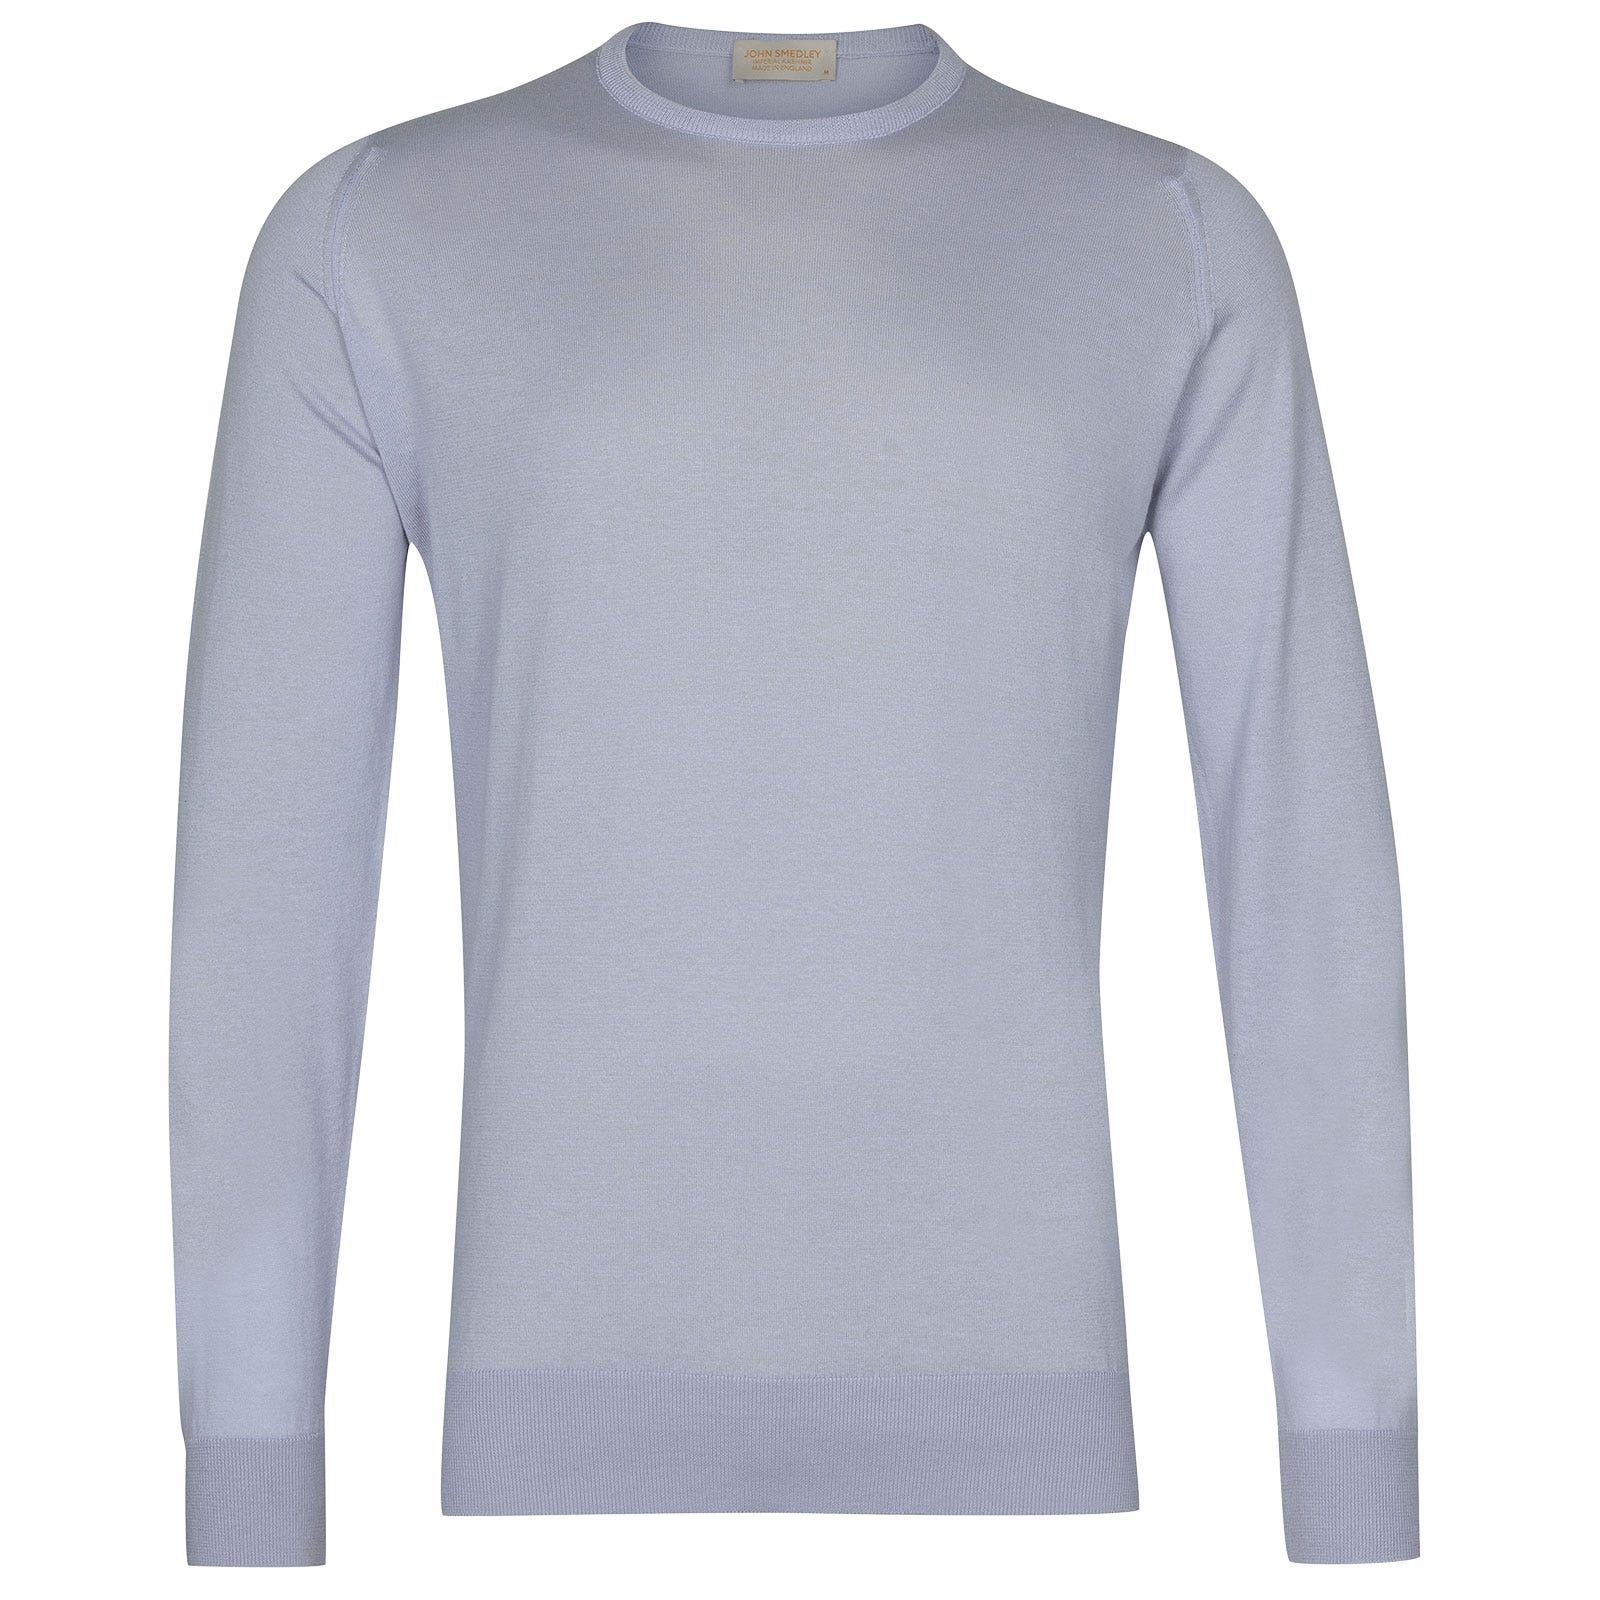 John Smedley Theon in Blue Mist Pullover-XLG